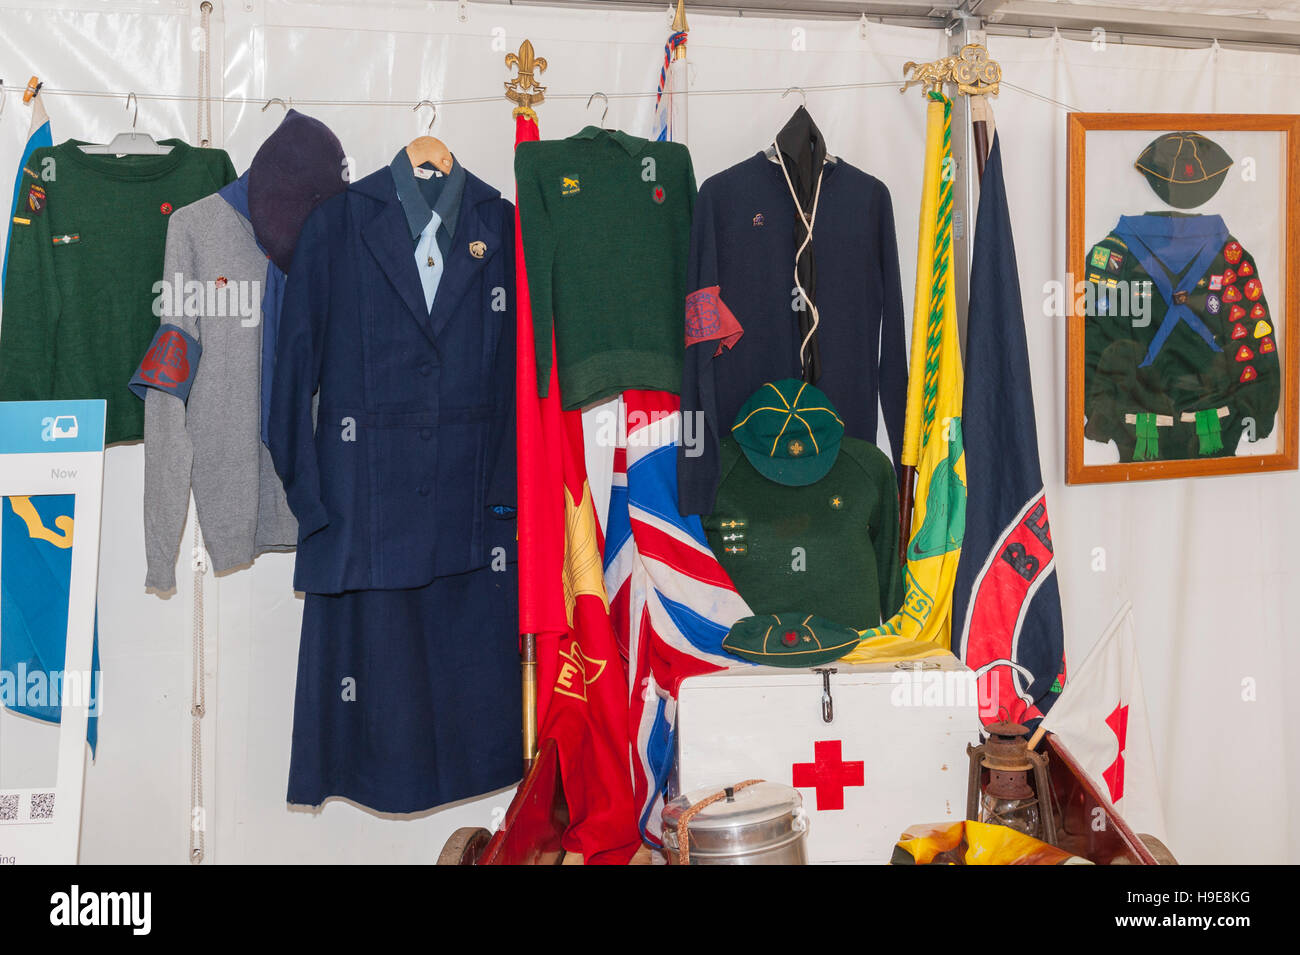 Cub Scout uniforms on show at the Royal Norfolk Show in the